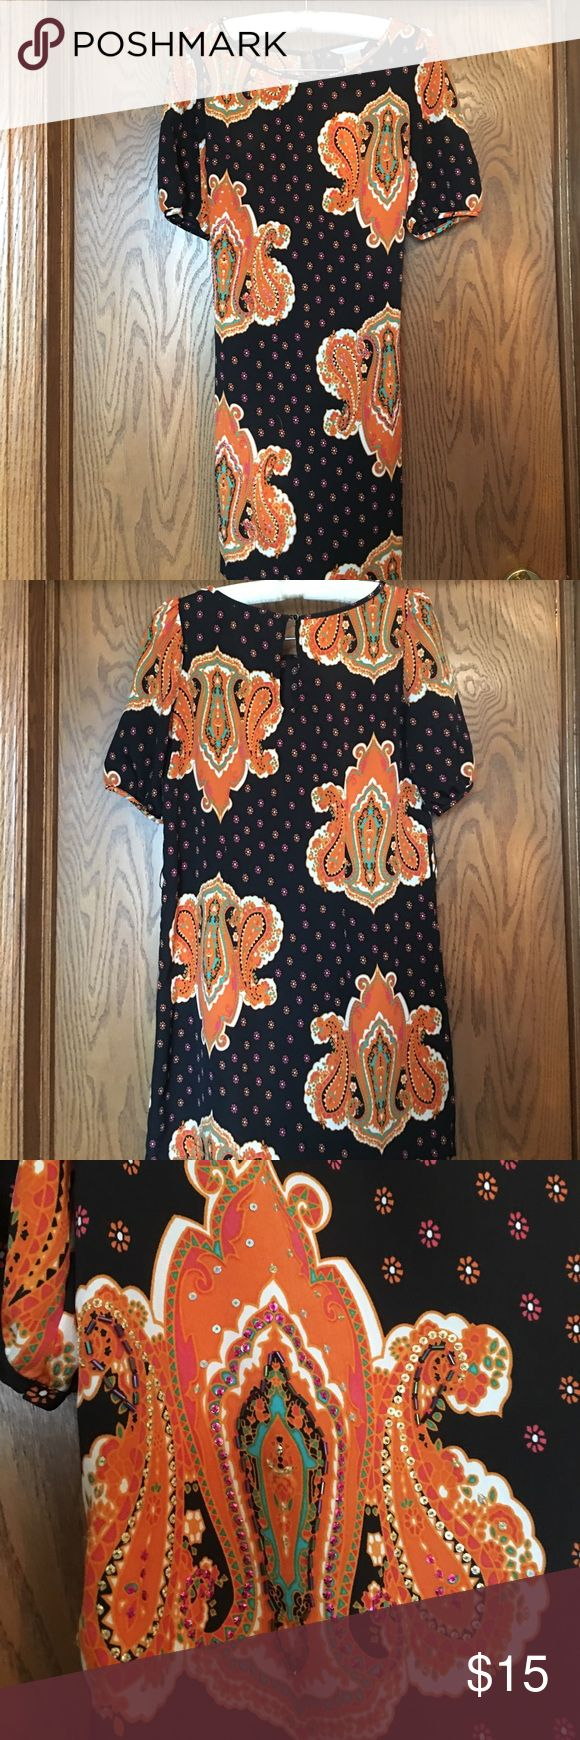 Wedding Guest Shift Dress Black and orange beautifully patterned dress with beading embellishment - great shape and a very flattering dress hits right above the knee  I ACCEPT OFFERS AND BUNDLE DISCOUNTS!!!!! Dresses